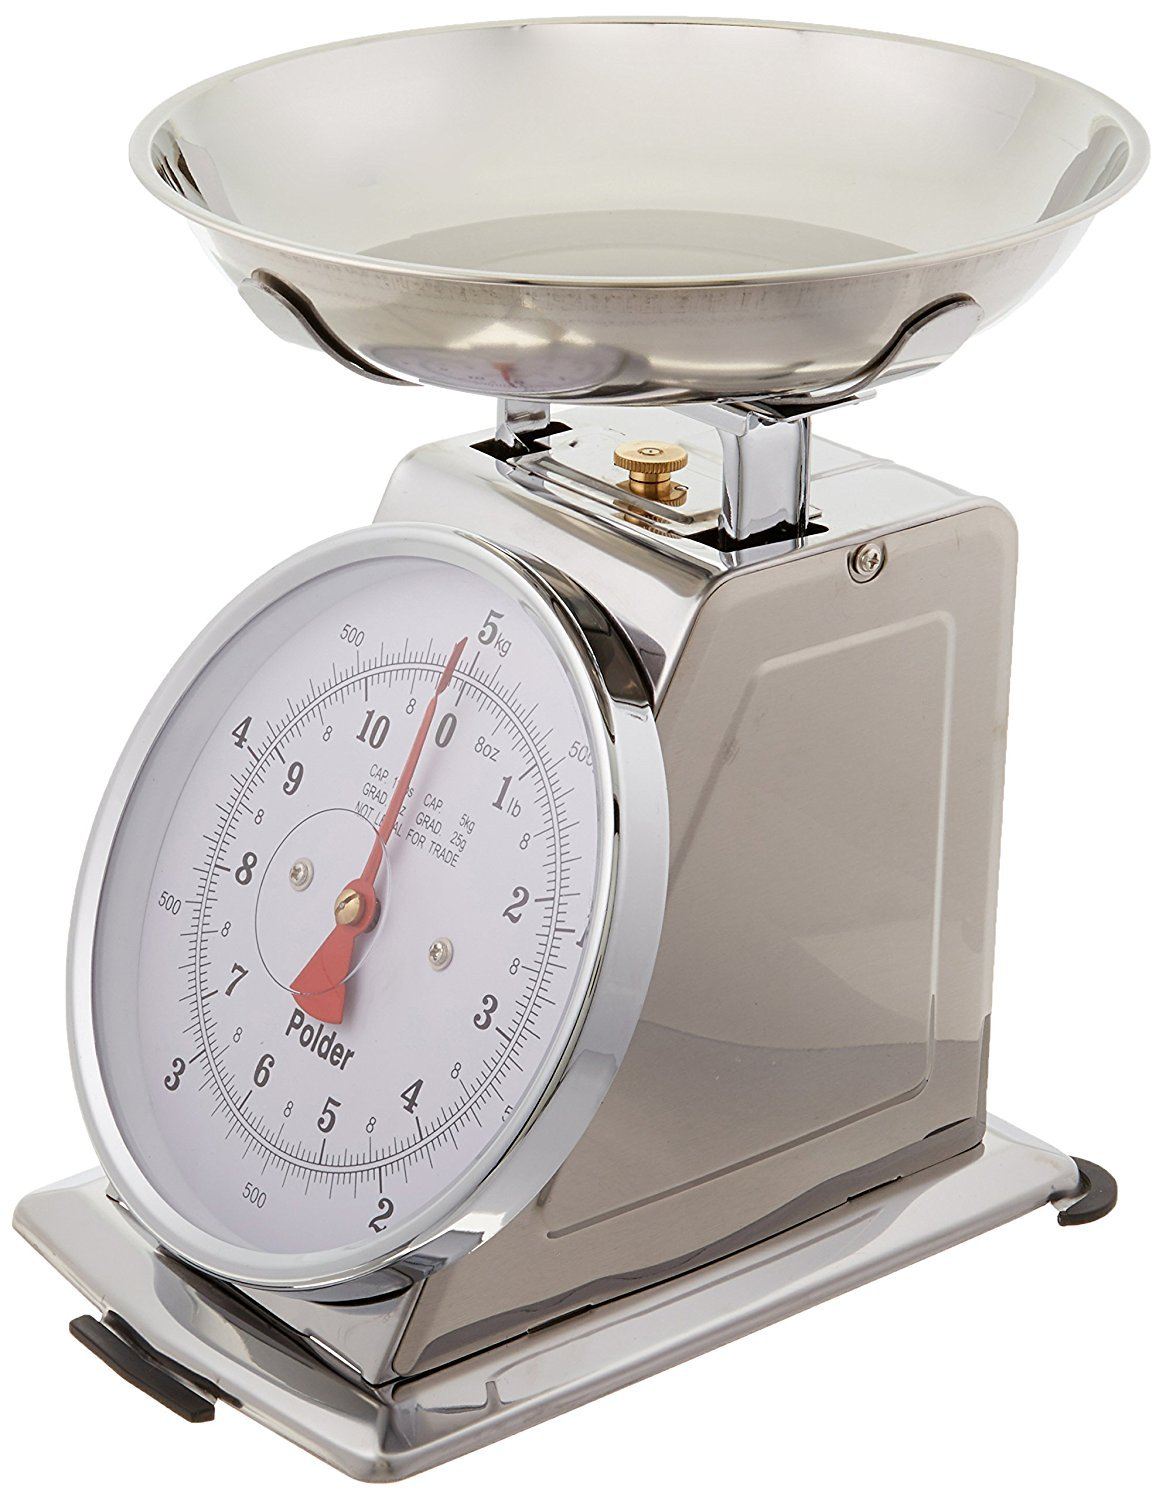 Amazon.com: Polder 985-75 Professional Stainless Steel Analog ...